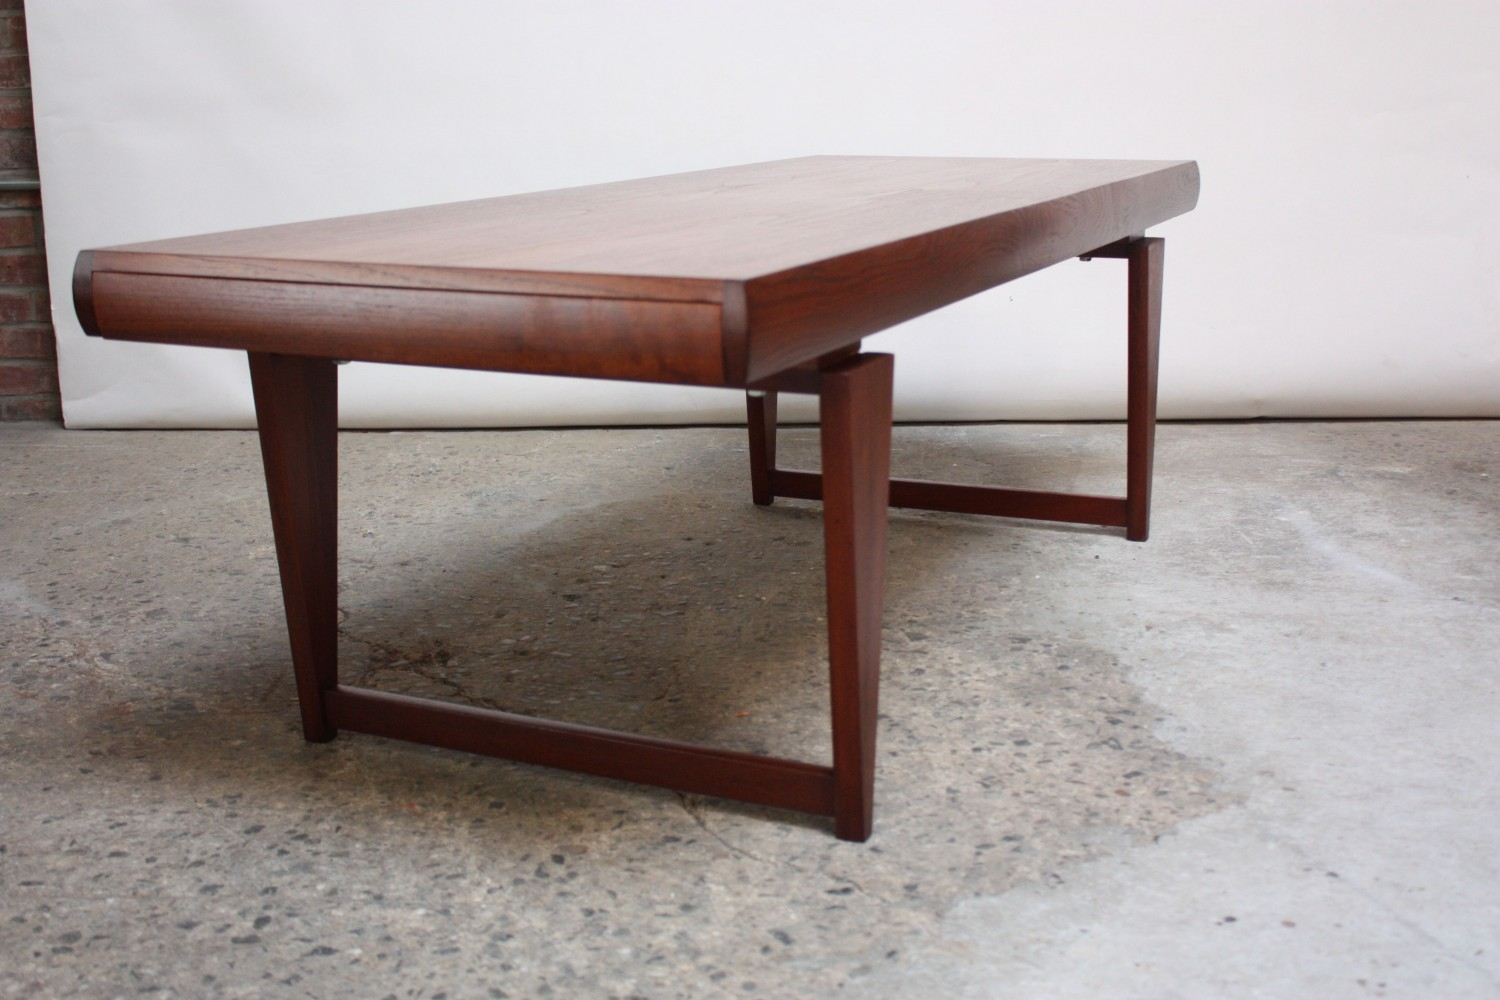 Home / Shop / Tables / Danish Modern Teak Extendable Coffee Table